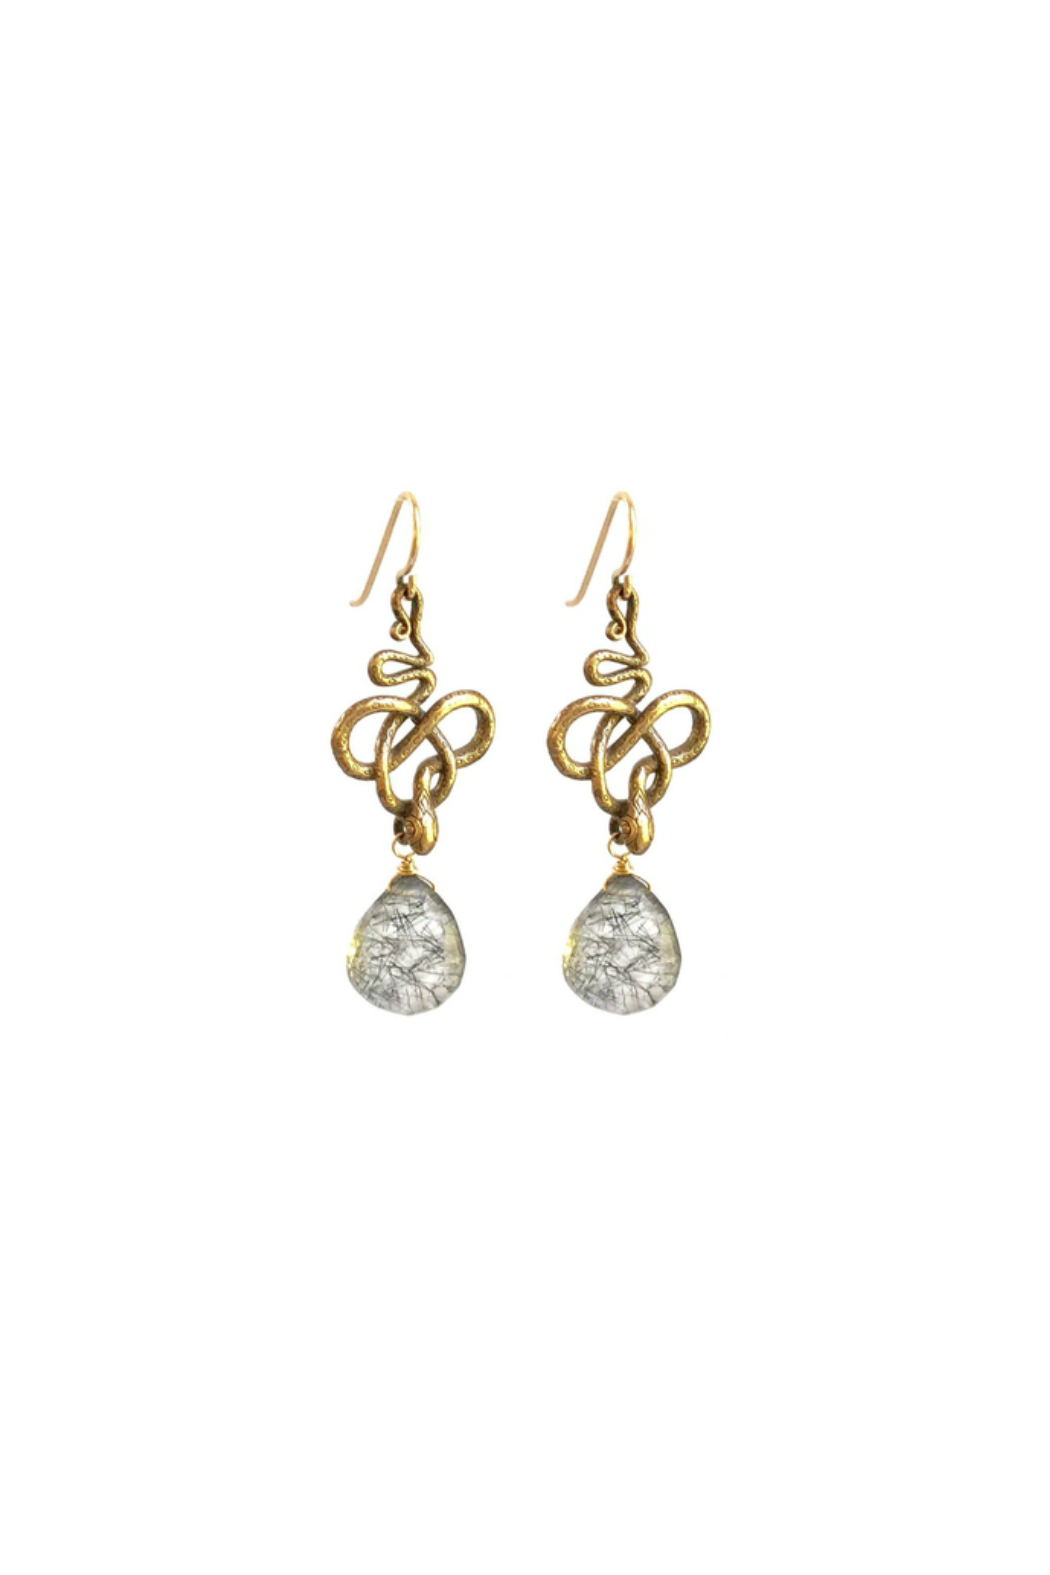 Susan Goodwin Jewelry Quartz Snake Earrings - Main Image